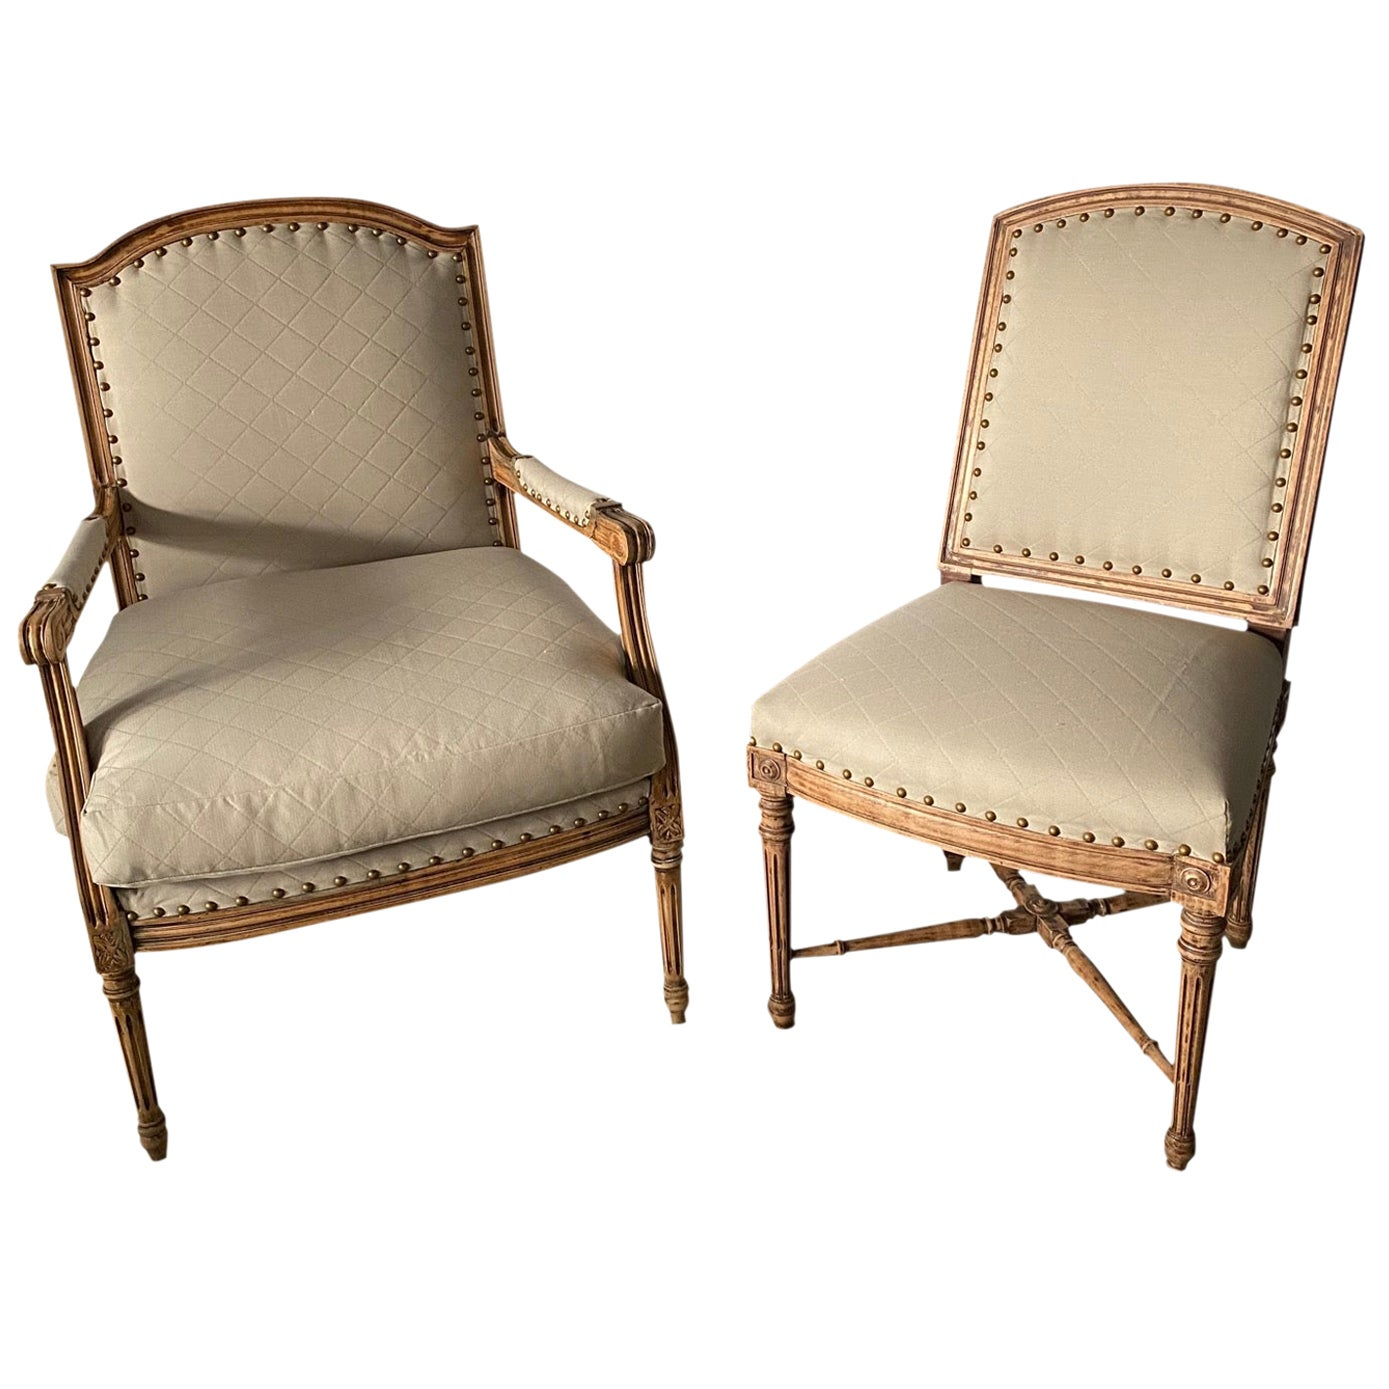 Louis XVI Style Fauteuil and Matching Side Chair